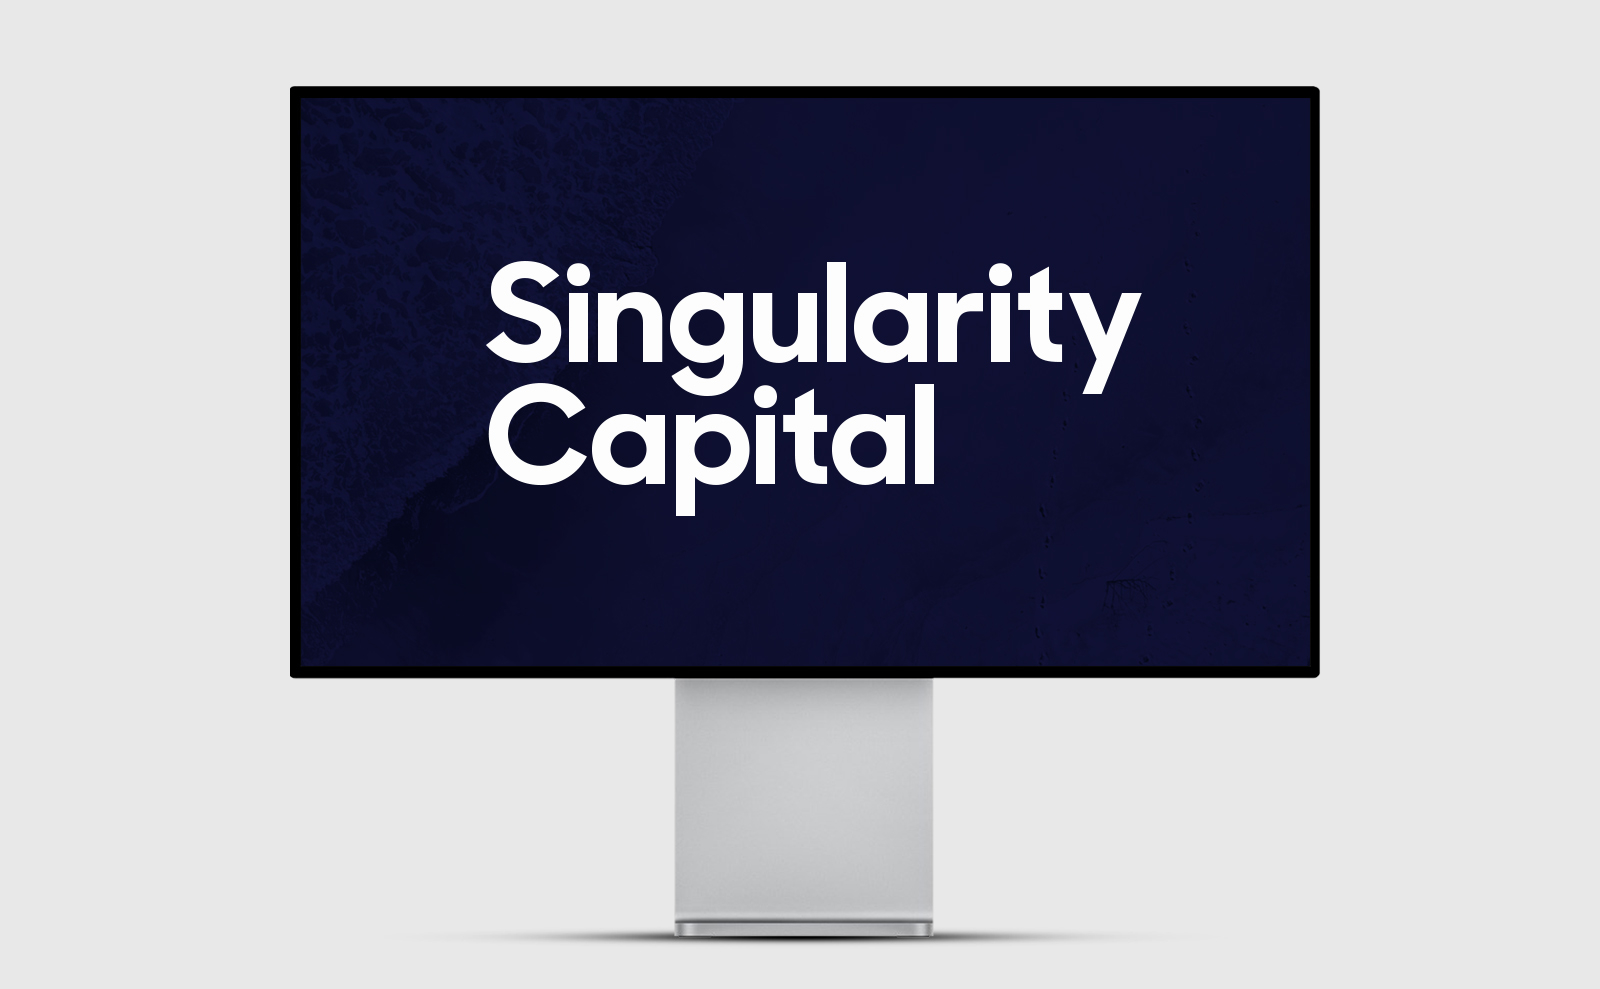 SGH Capital logo on an Apple Display XDR